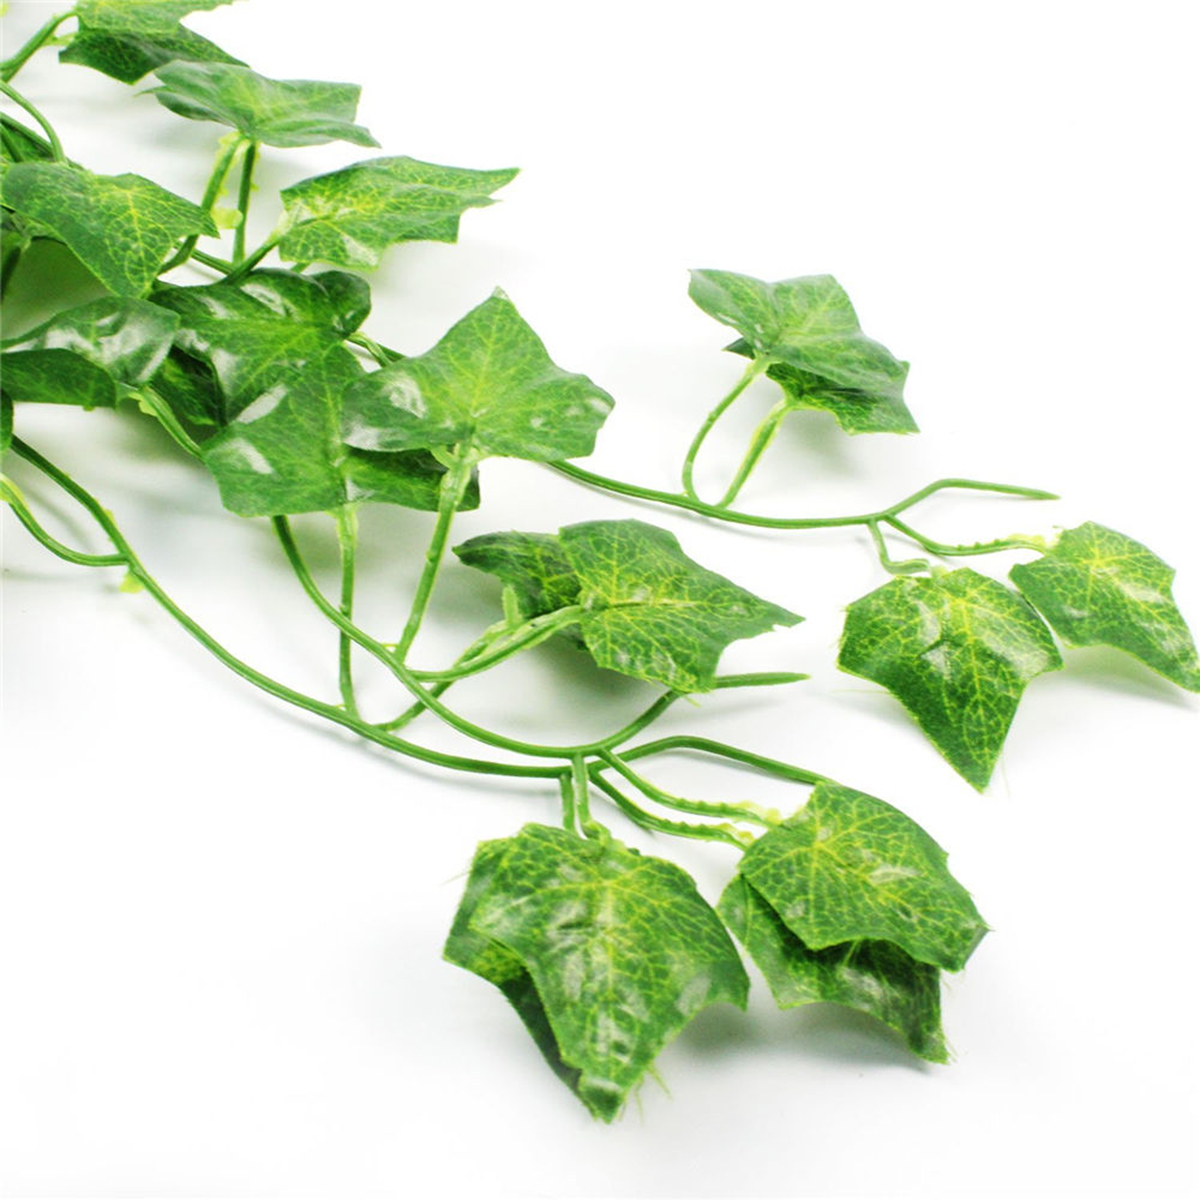 12pcs Artificial Greenery Vine Ivy Leaves Garland Hanging Wedding Party Garden Decorations